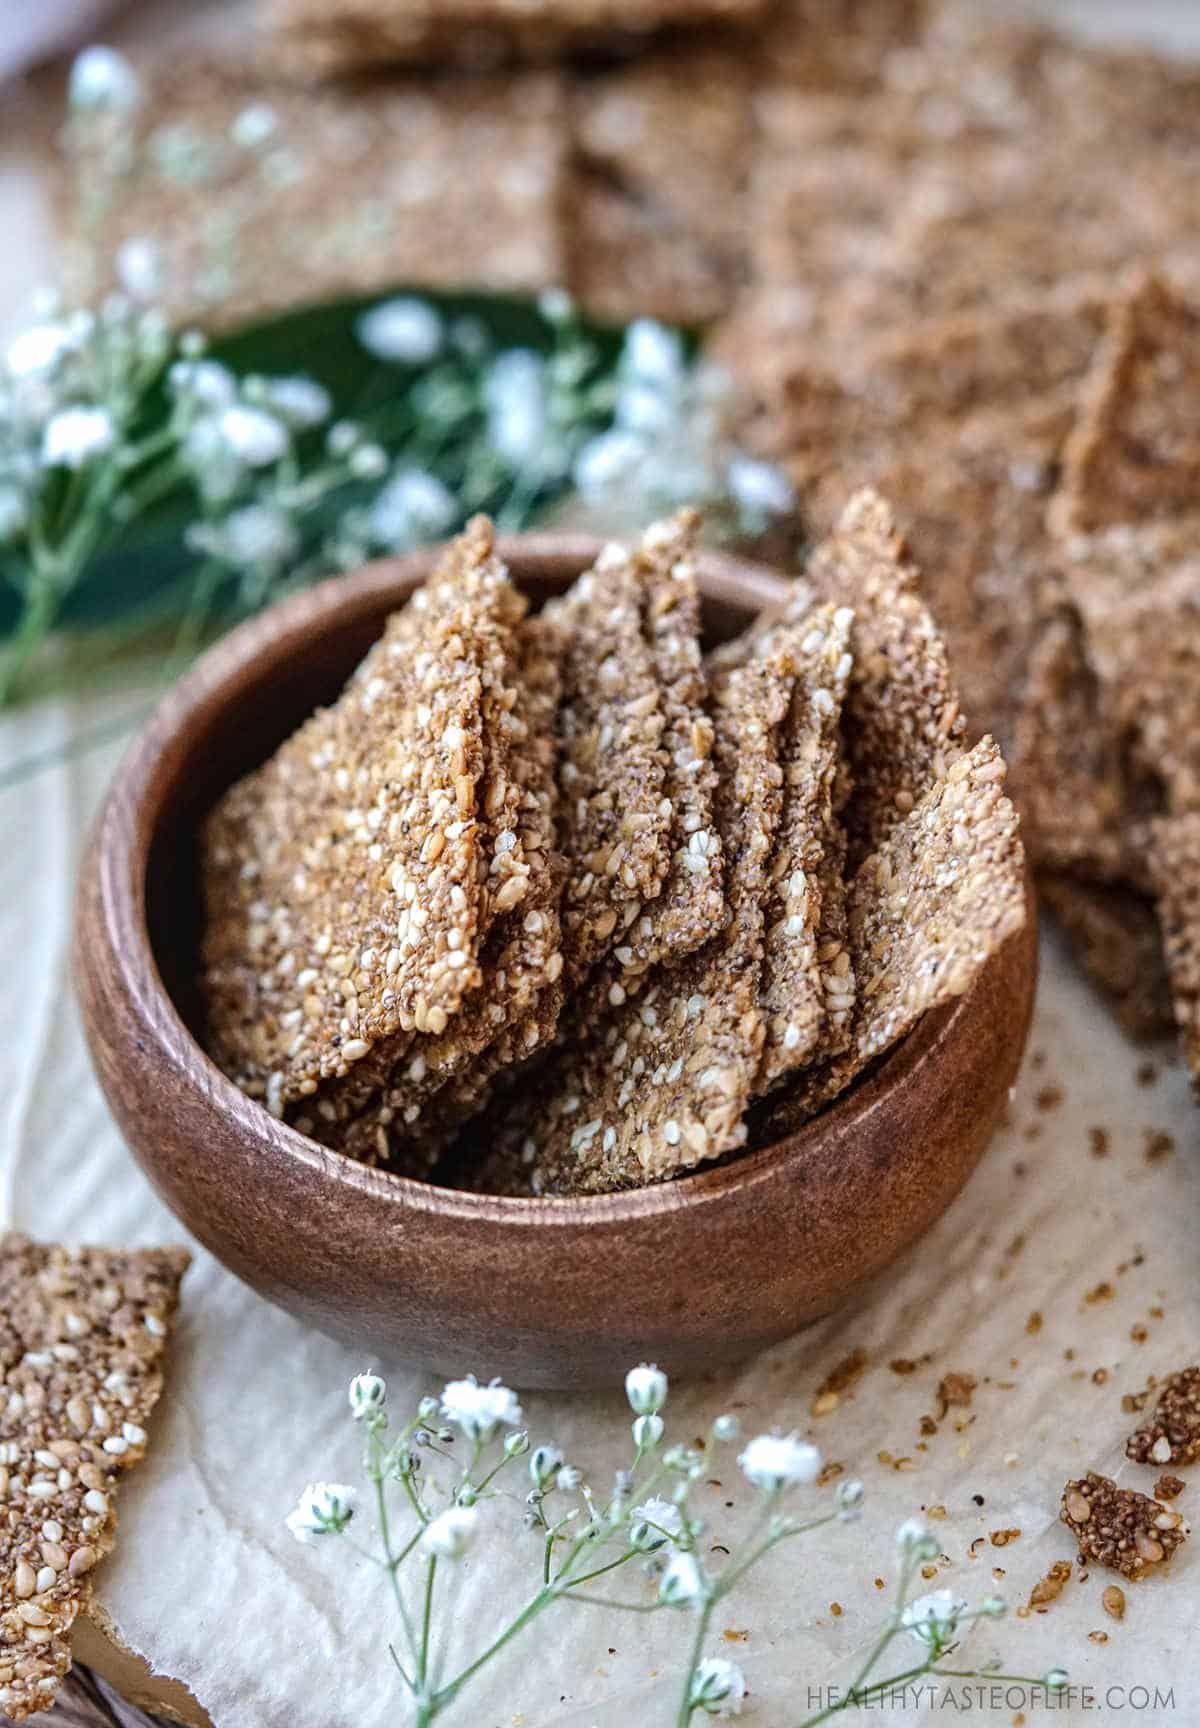 Popped amaranth crackers with flax seeds and sesame seeds